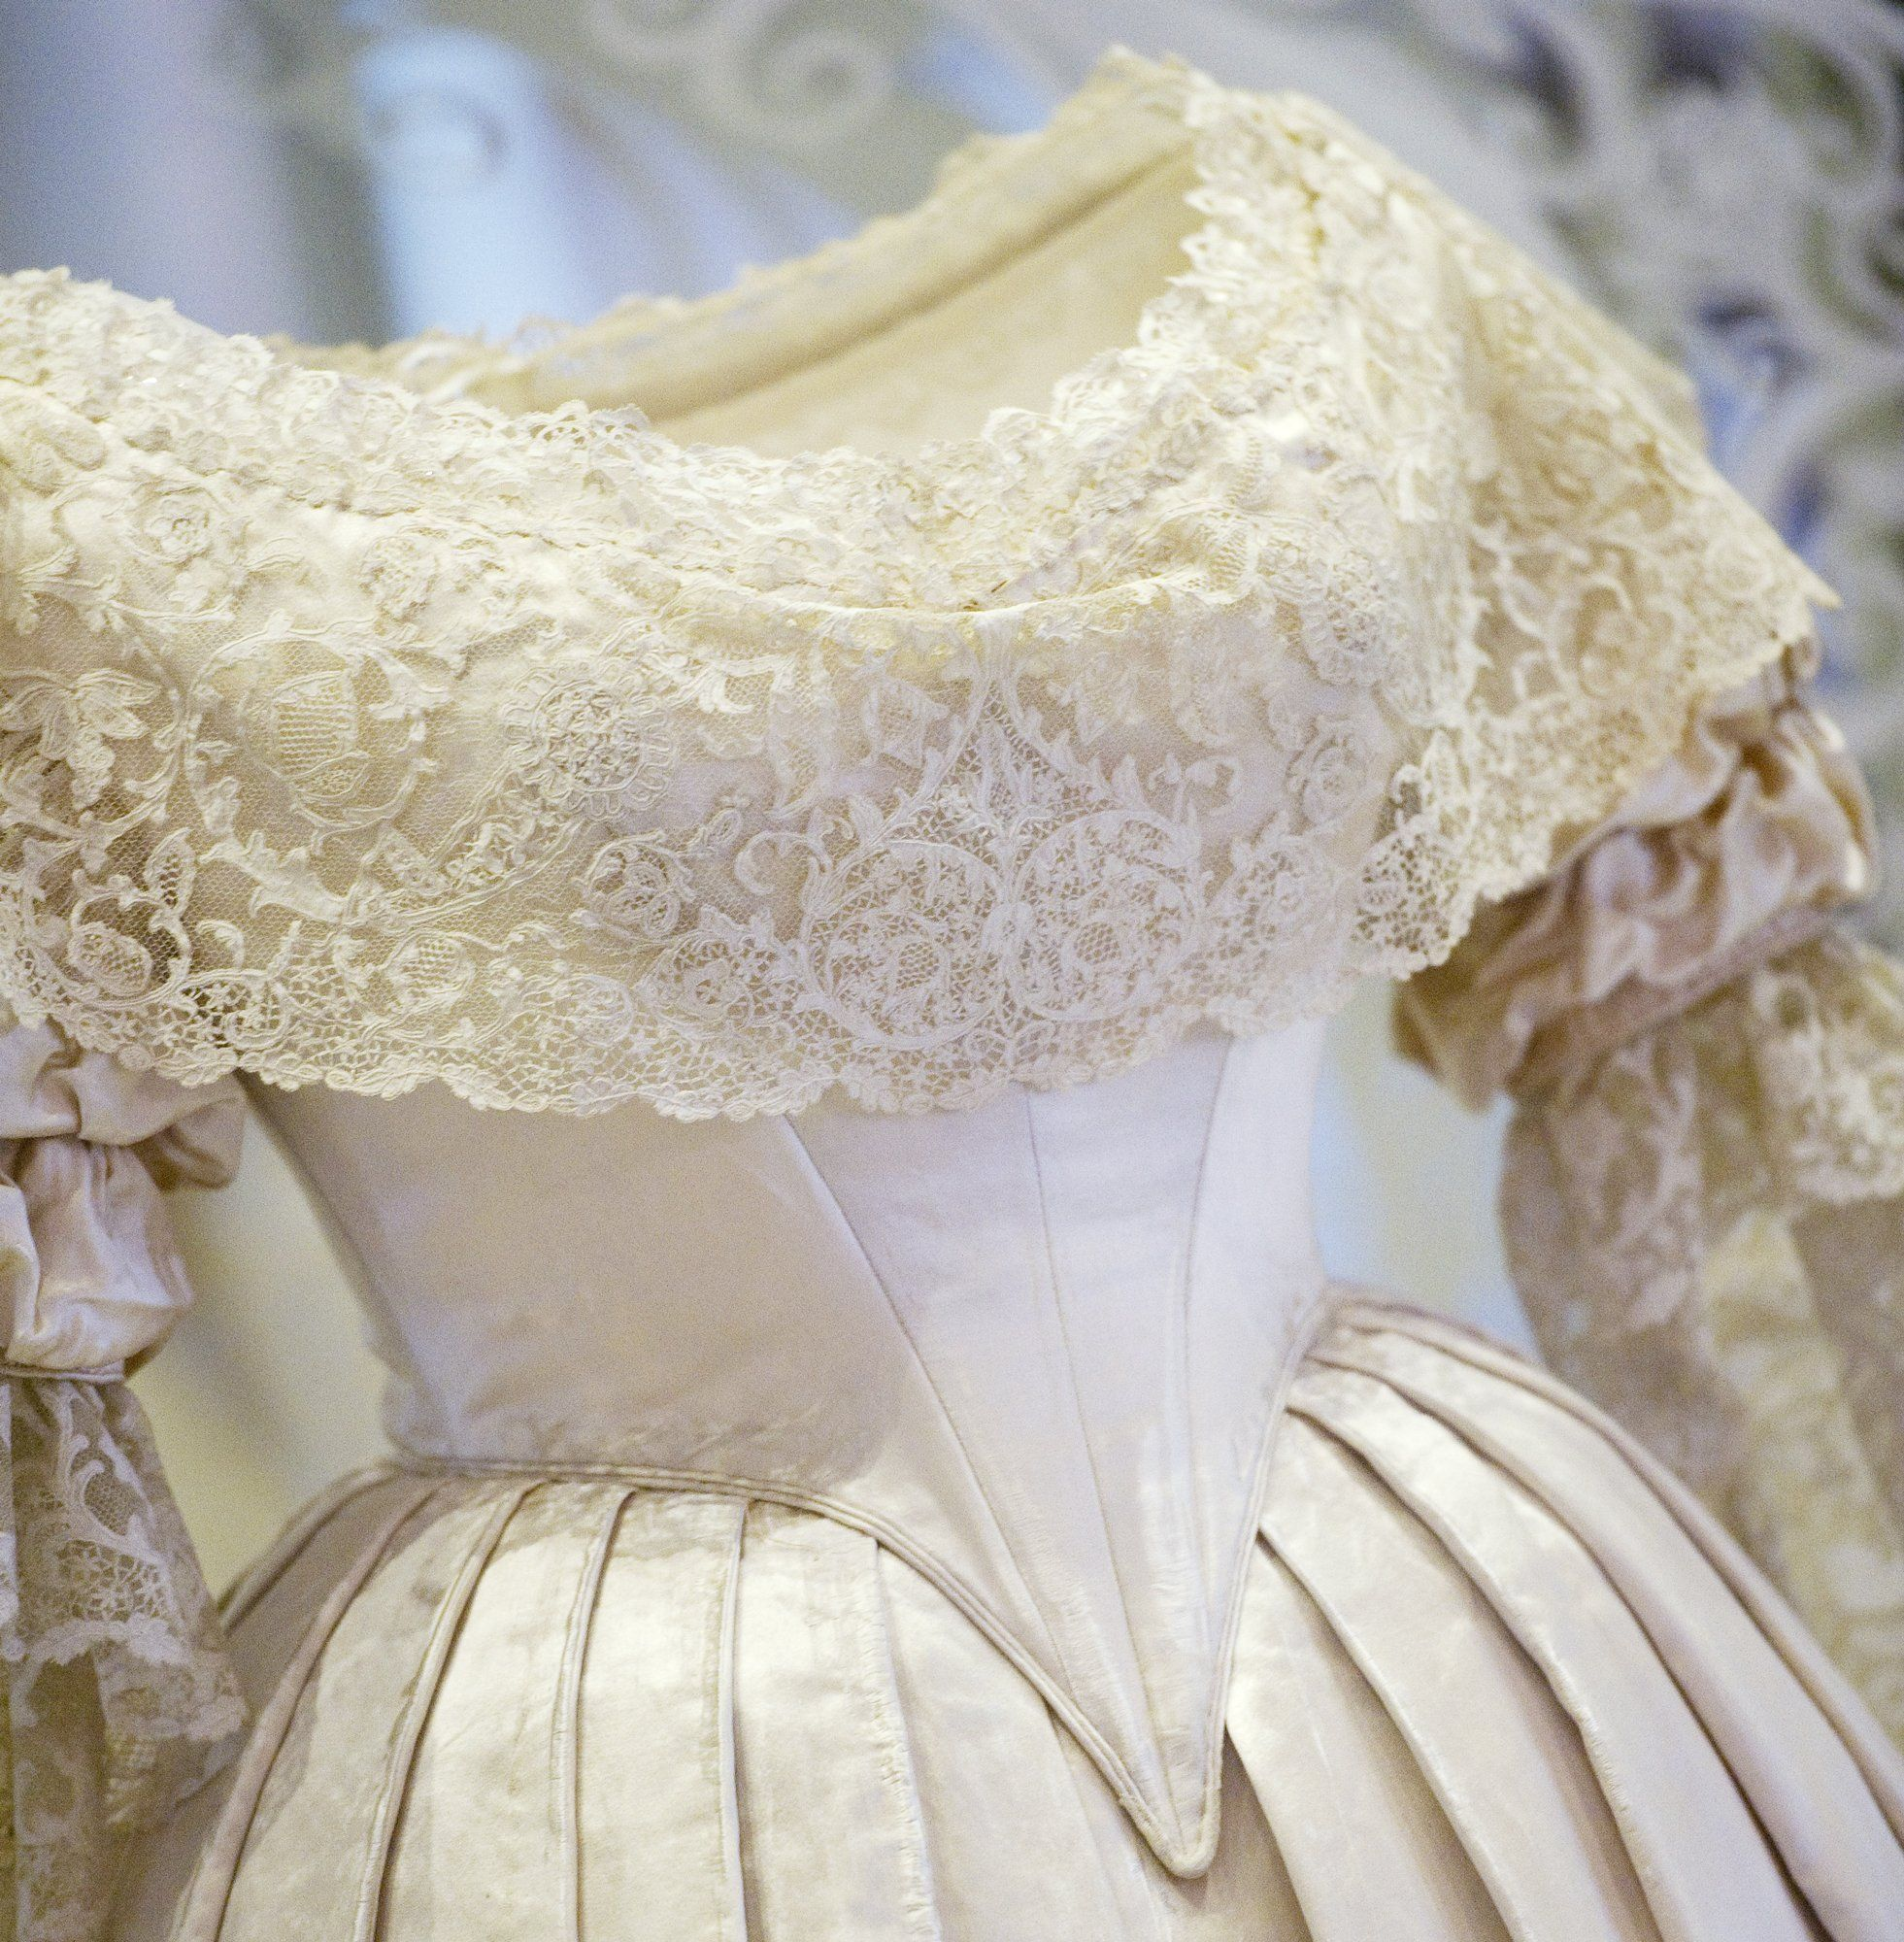 Queen Victoria Made White Wedding Dresses Popular. Here's